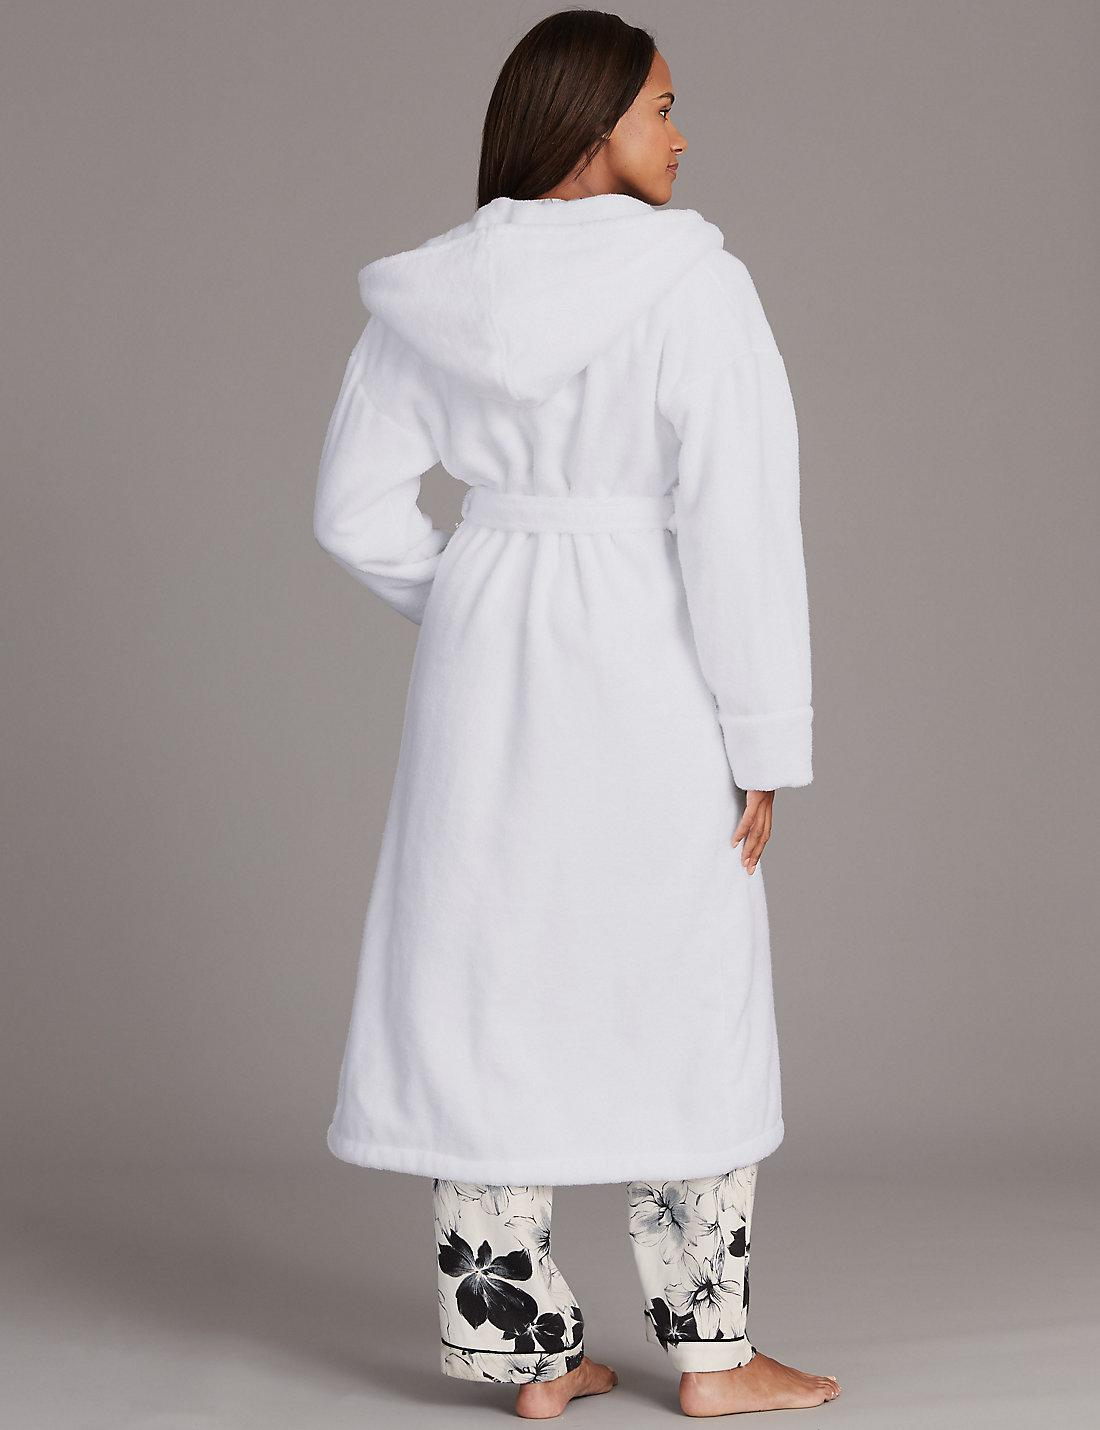 Lyst - Marks & Spencer Pure Cotton Towelling Dressing Gown in White